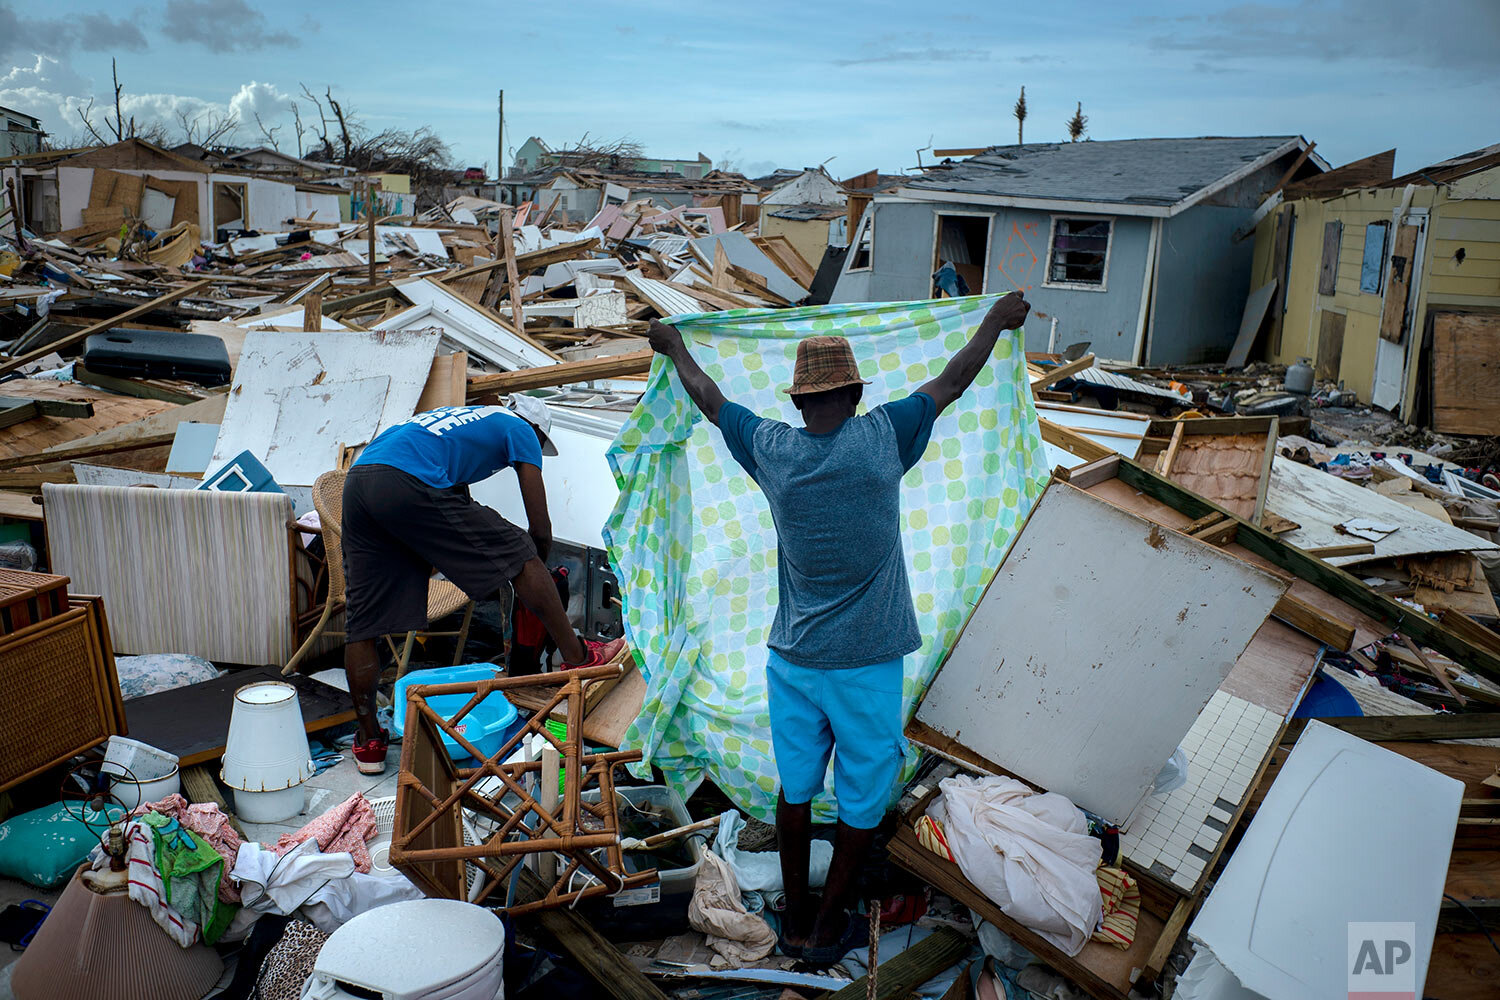 Immigrants from Haiti recover their belongings from the rubble in their destroyed homes, in the aftermath of Hurricane Dorian in Abaco, Bahamas, Monday, Sept. 16, 2019.  (AP Photo/Ramon Espinosa)